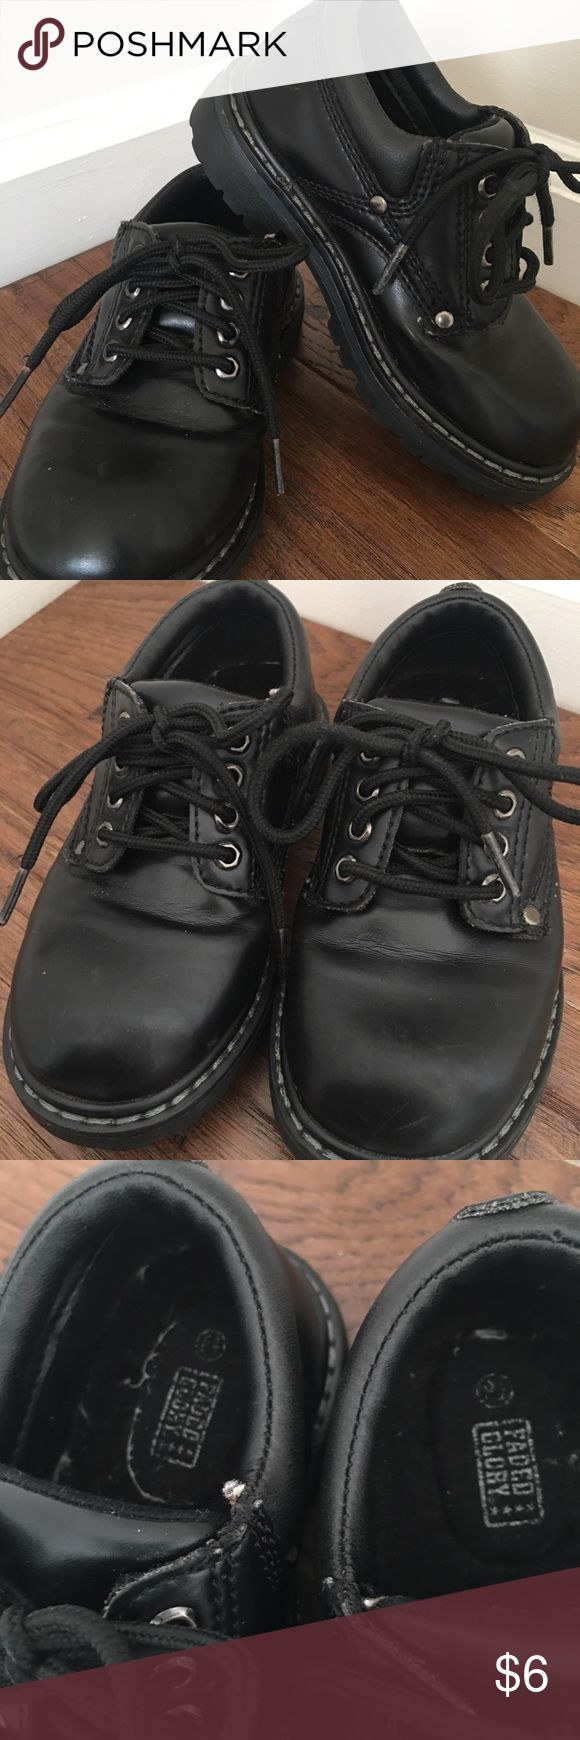 Faded Glory Black Toddler Dress Shoes Size 8.5 Your little guy will look so dapper in these sweet dress shoes! Worn only once but are a reposh from another seller. Faded Glory Shoes Dress Shoes